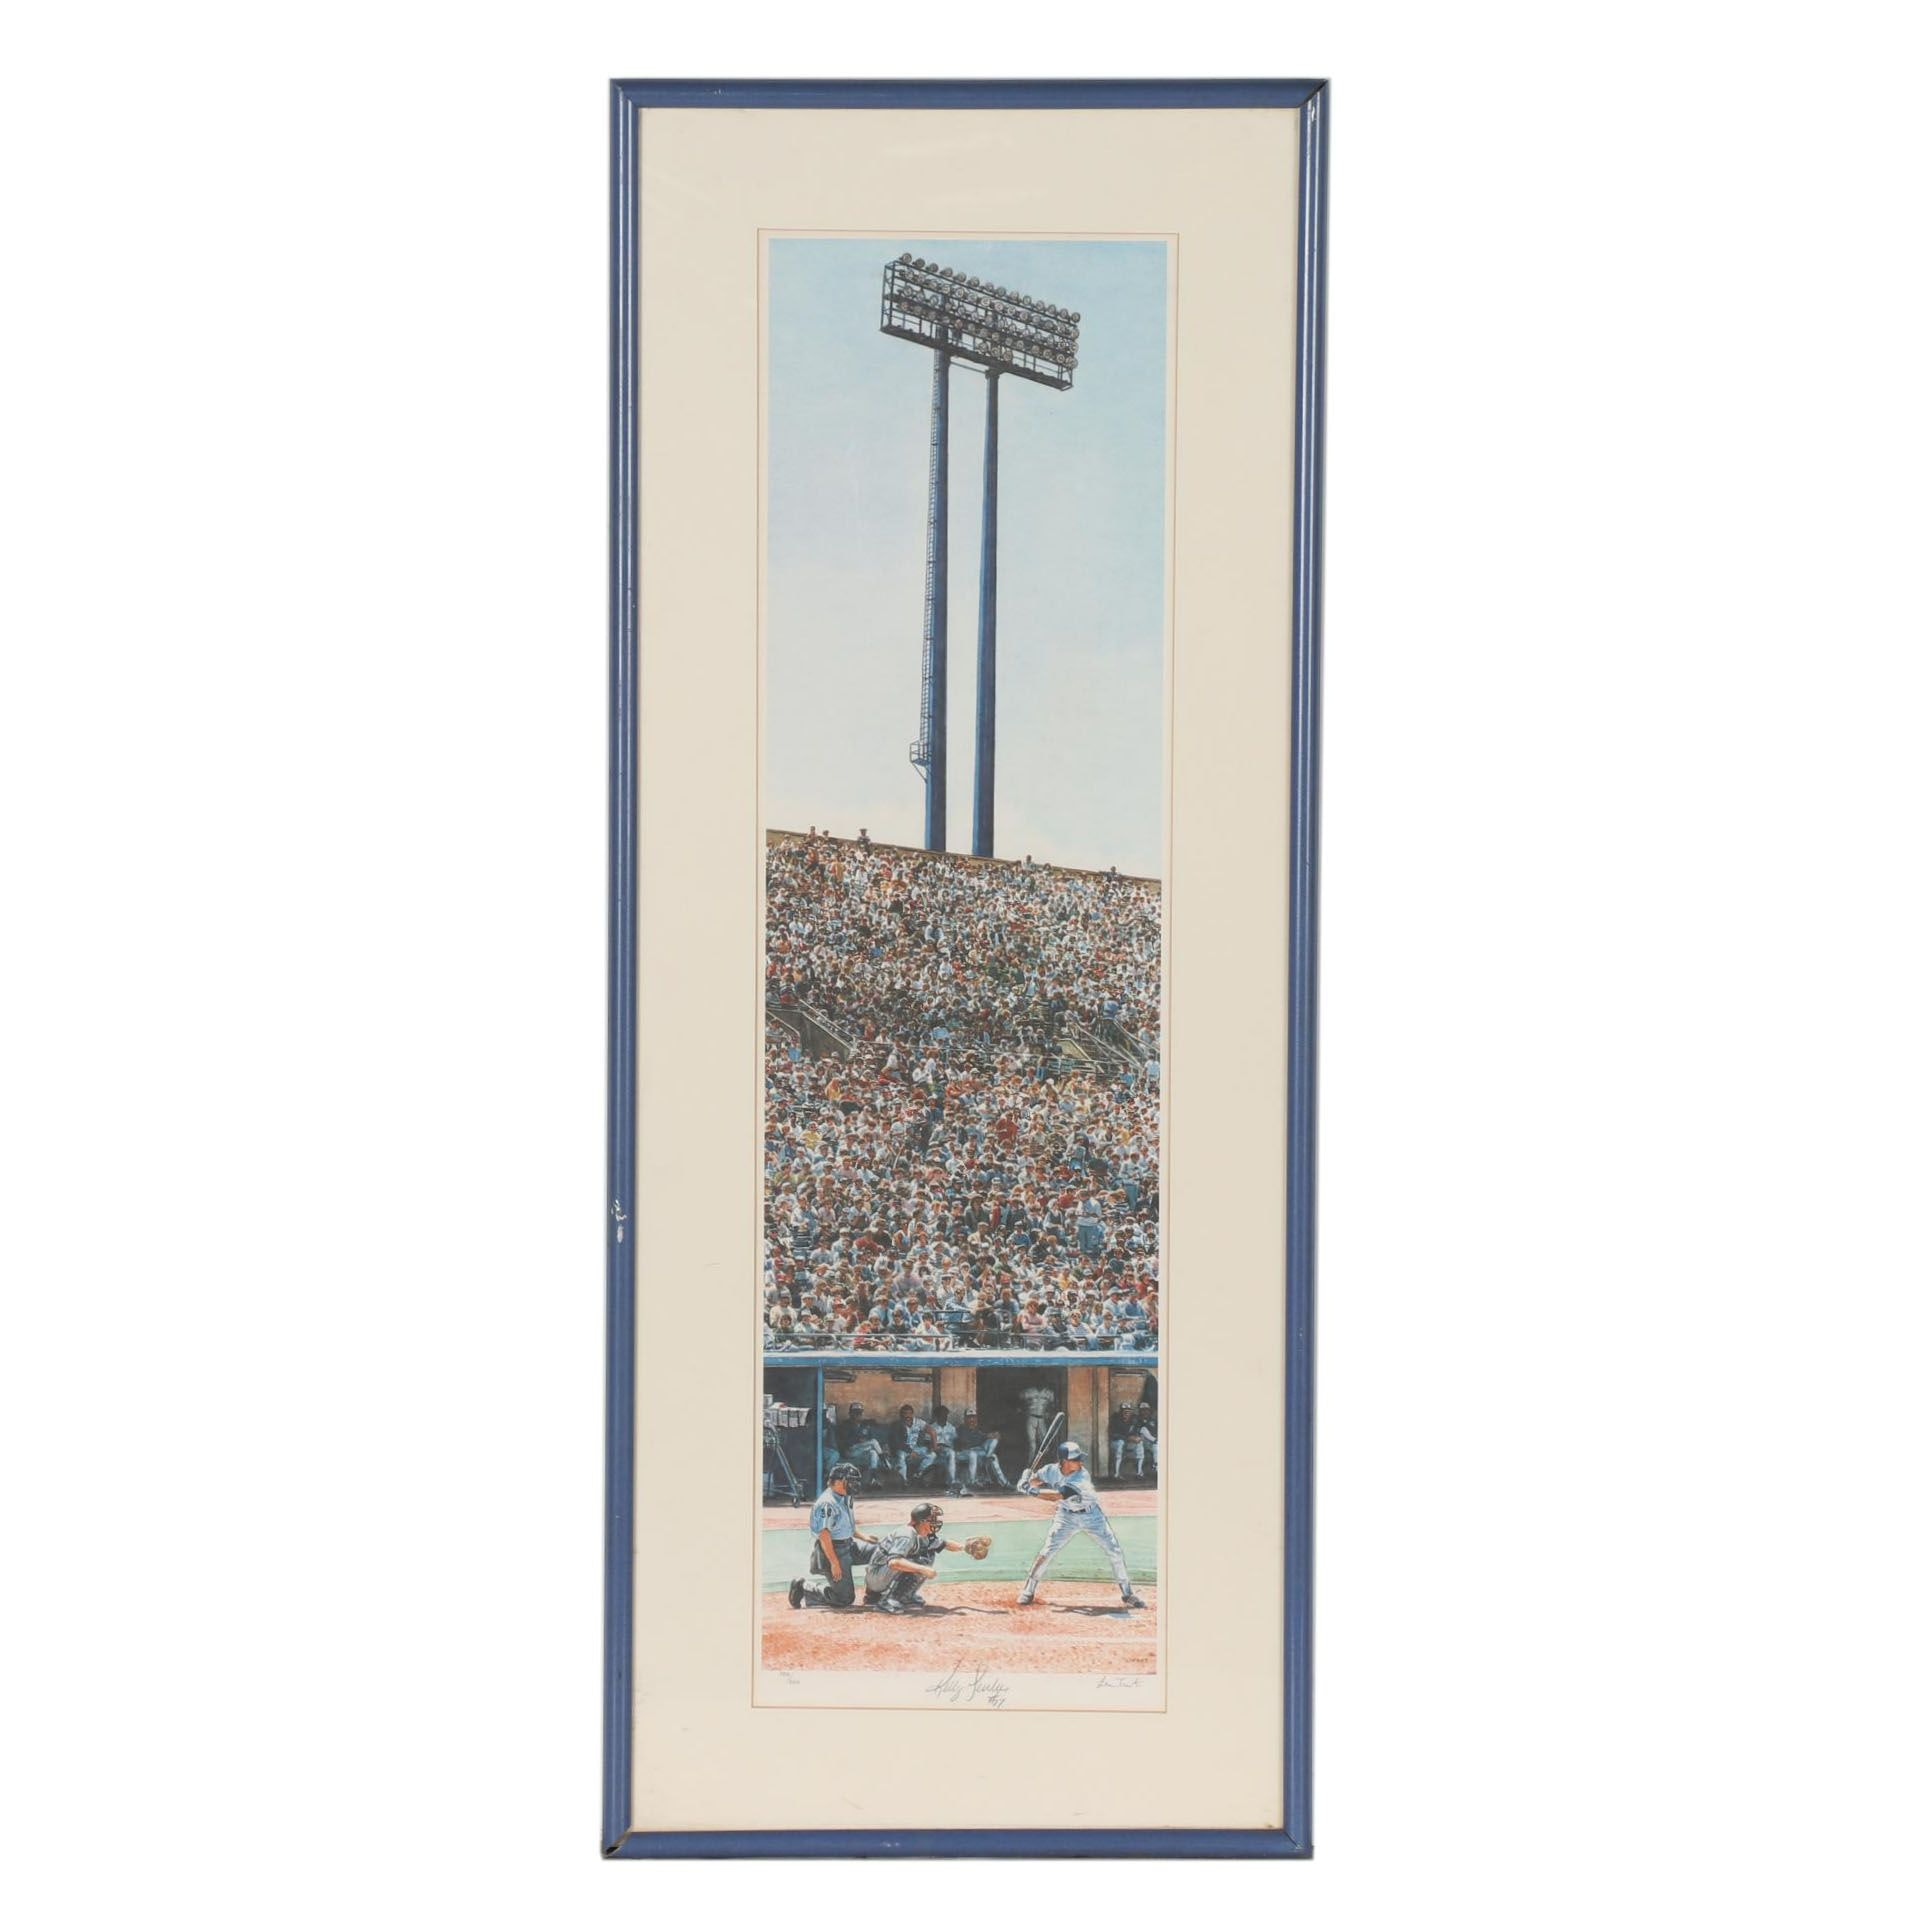 """Blue Jays Kelly Gruber Autographed Les Tait Offset Lithograph """"At Bat"""""""